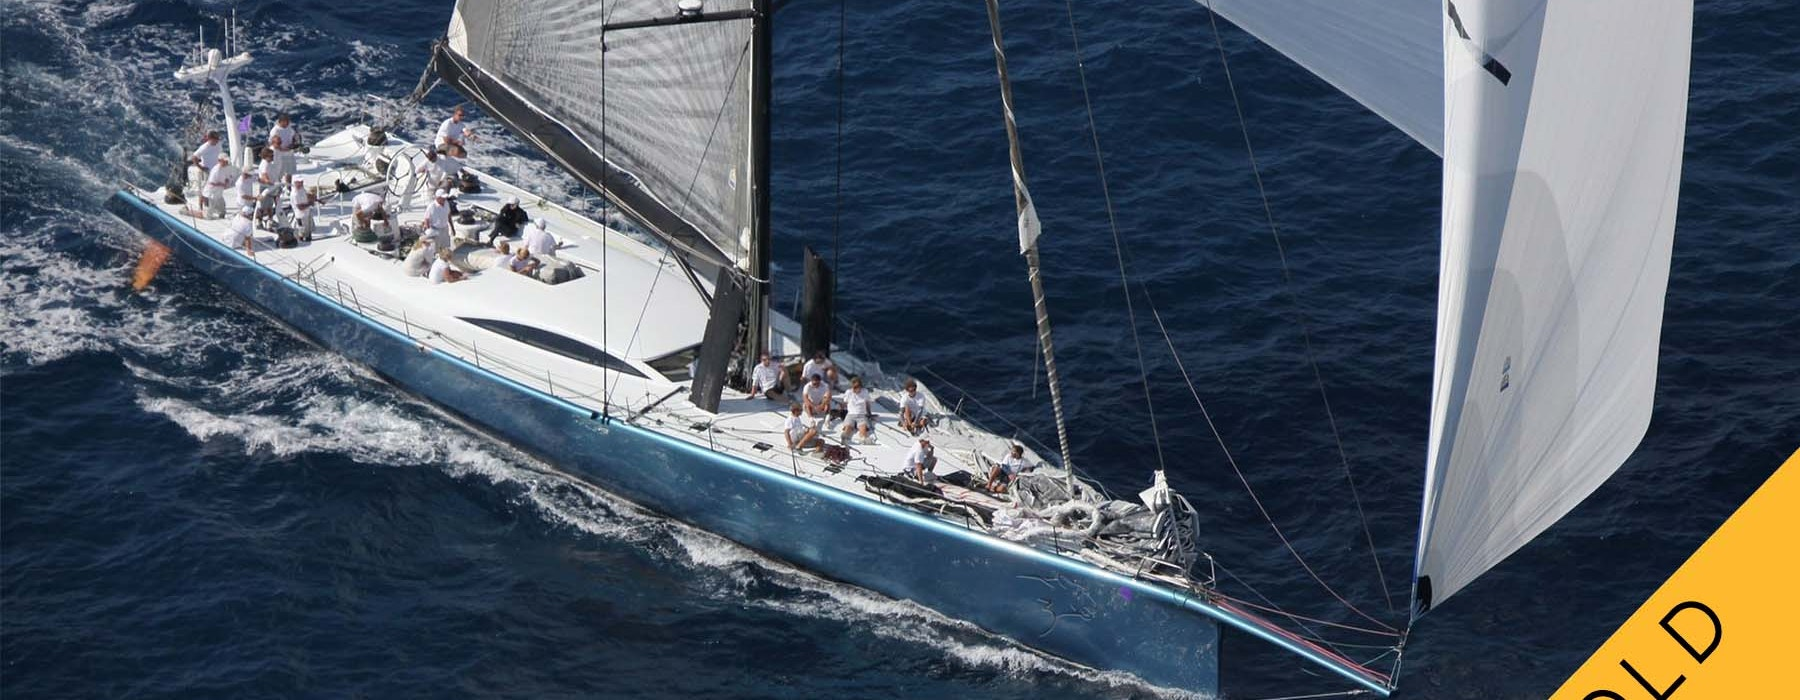 Sailing yacht LEOPARD-3 McConaghy 30.5m SOLD